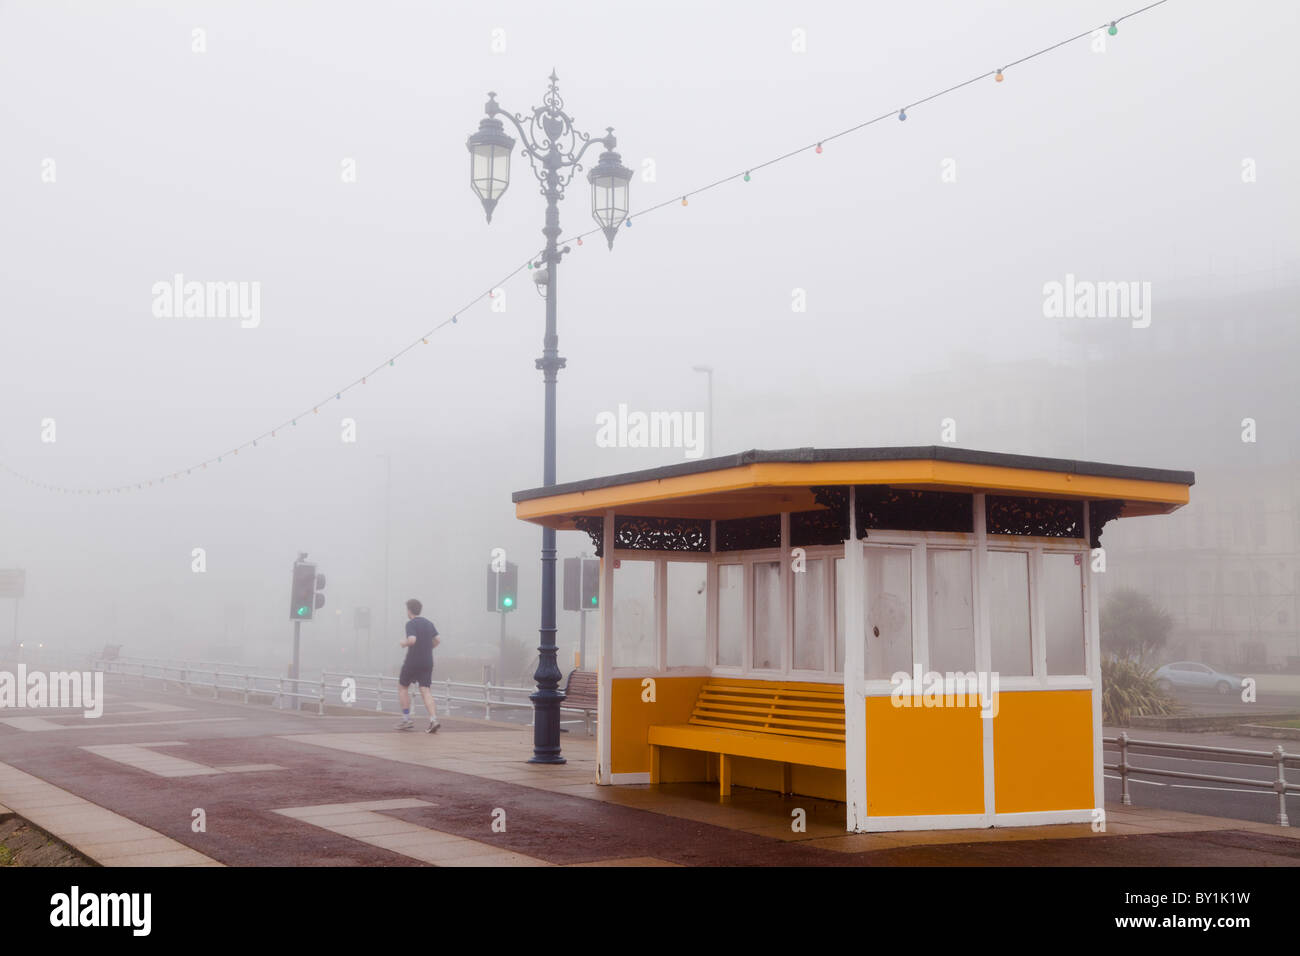 jogging in the fog on the seafront promenade in winter past a shelter - Stock Image